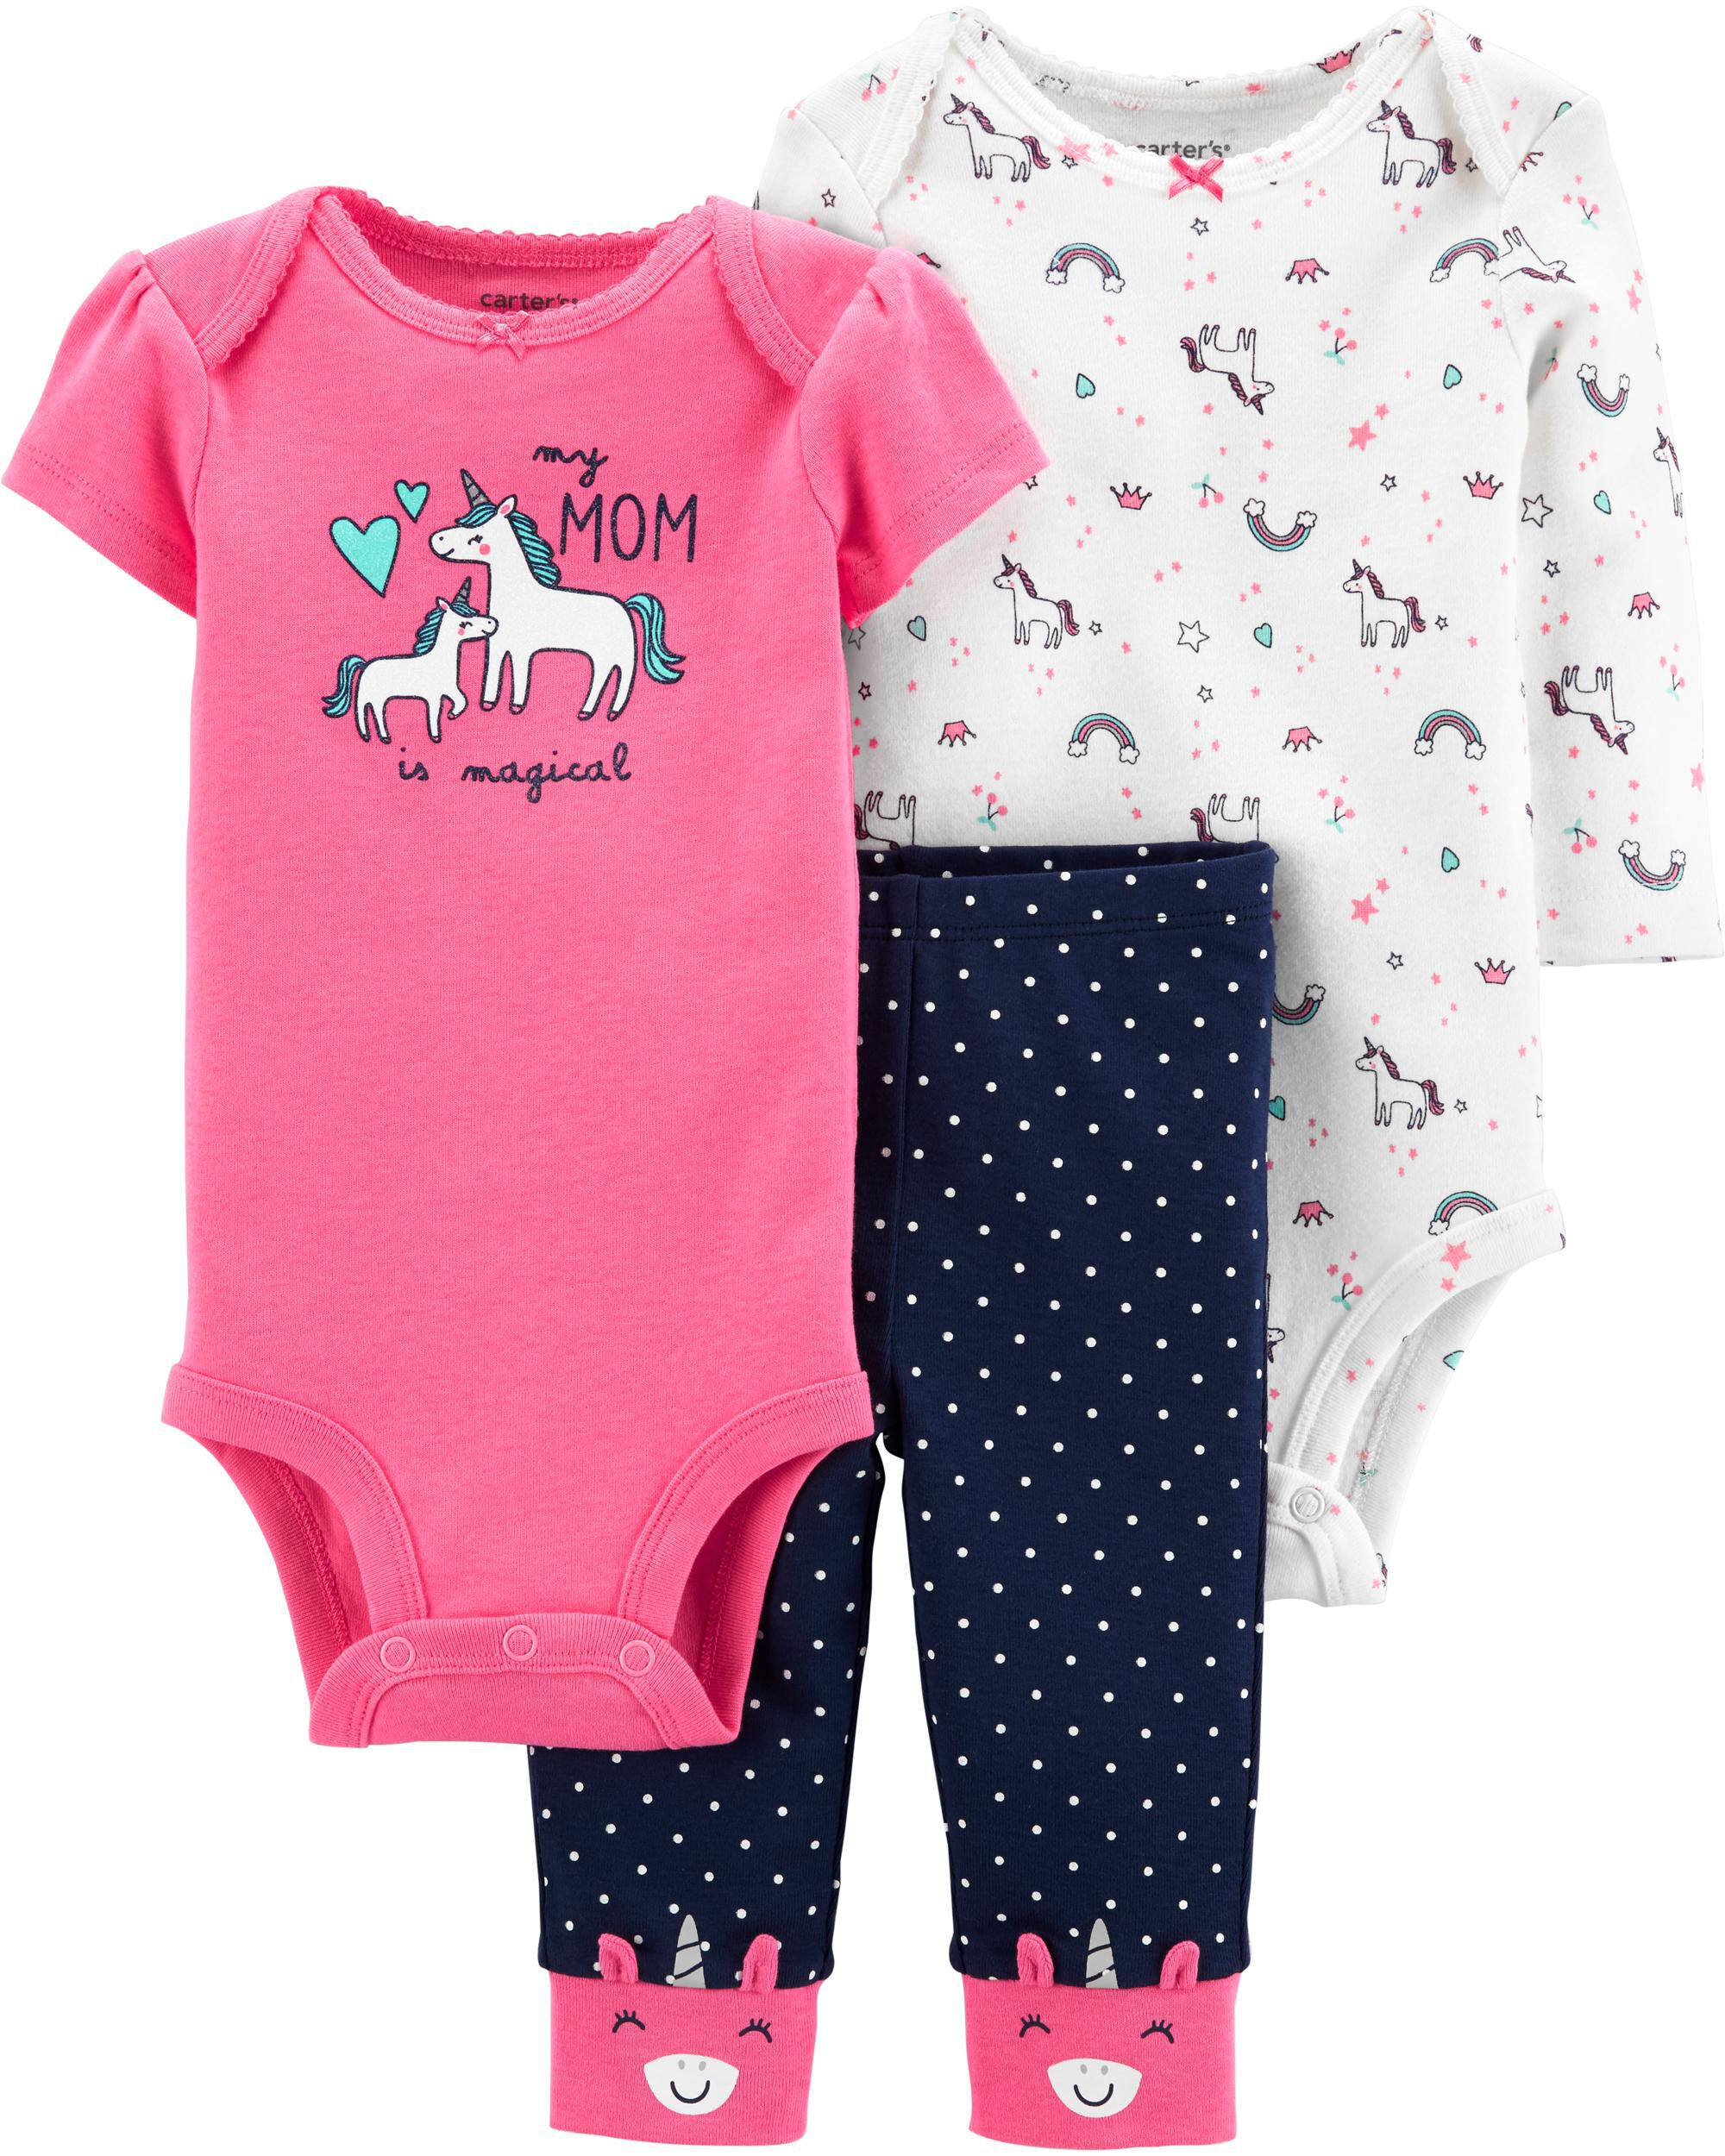 Carters Baby Girls Graphic Footie Floral Heart 18 Months